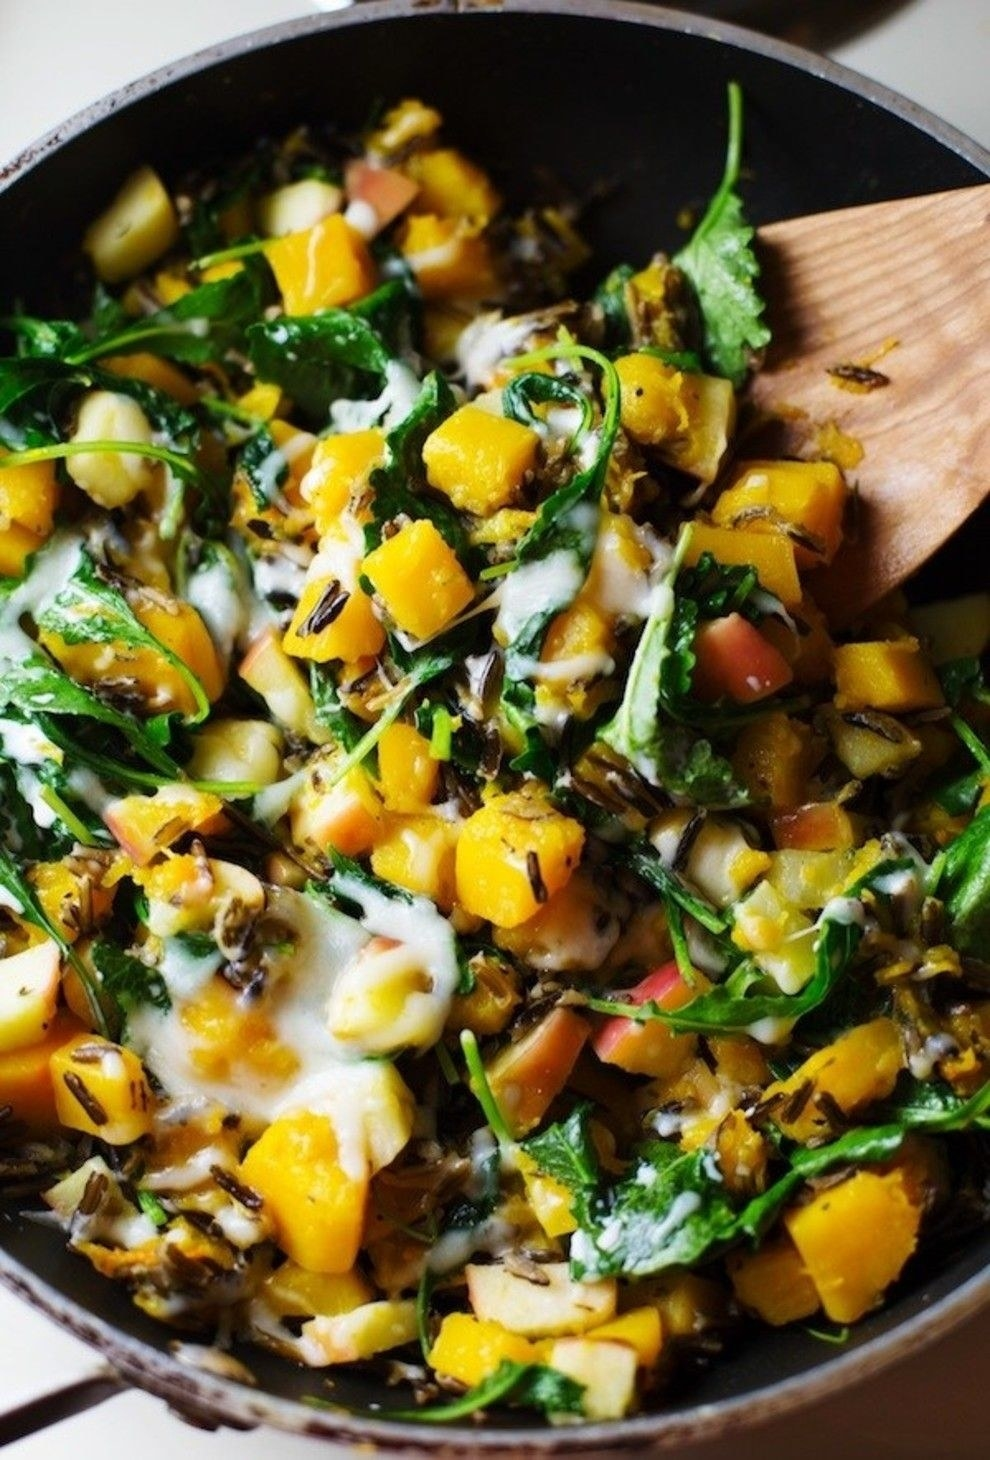 A wild rice skillet with lots of veggies.